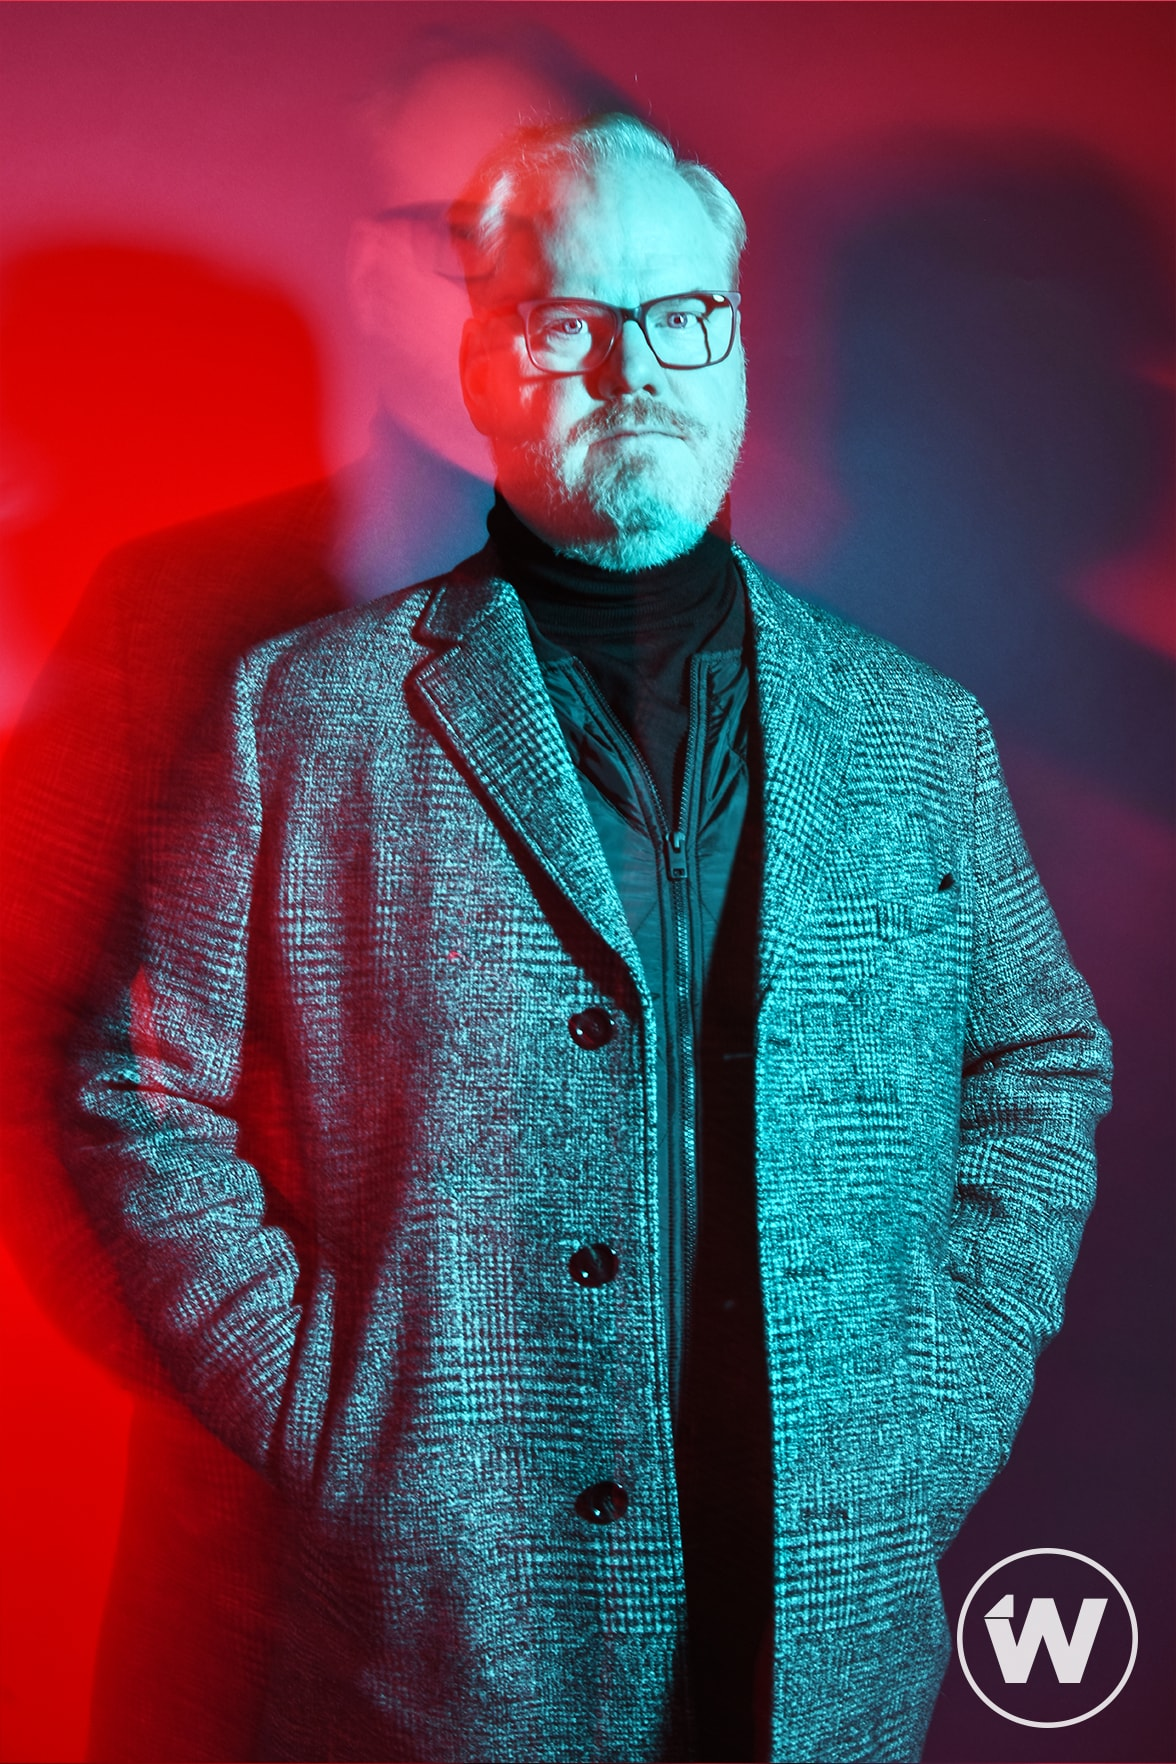 Jim Gaffigan, Light from Light